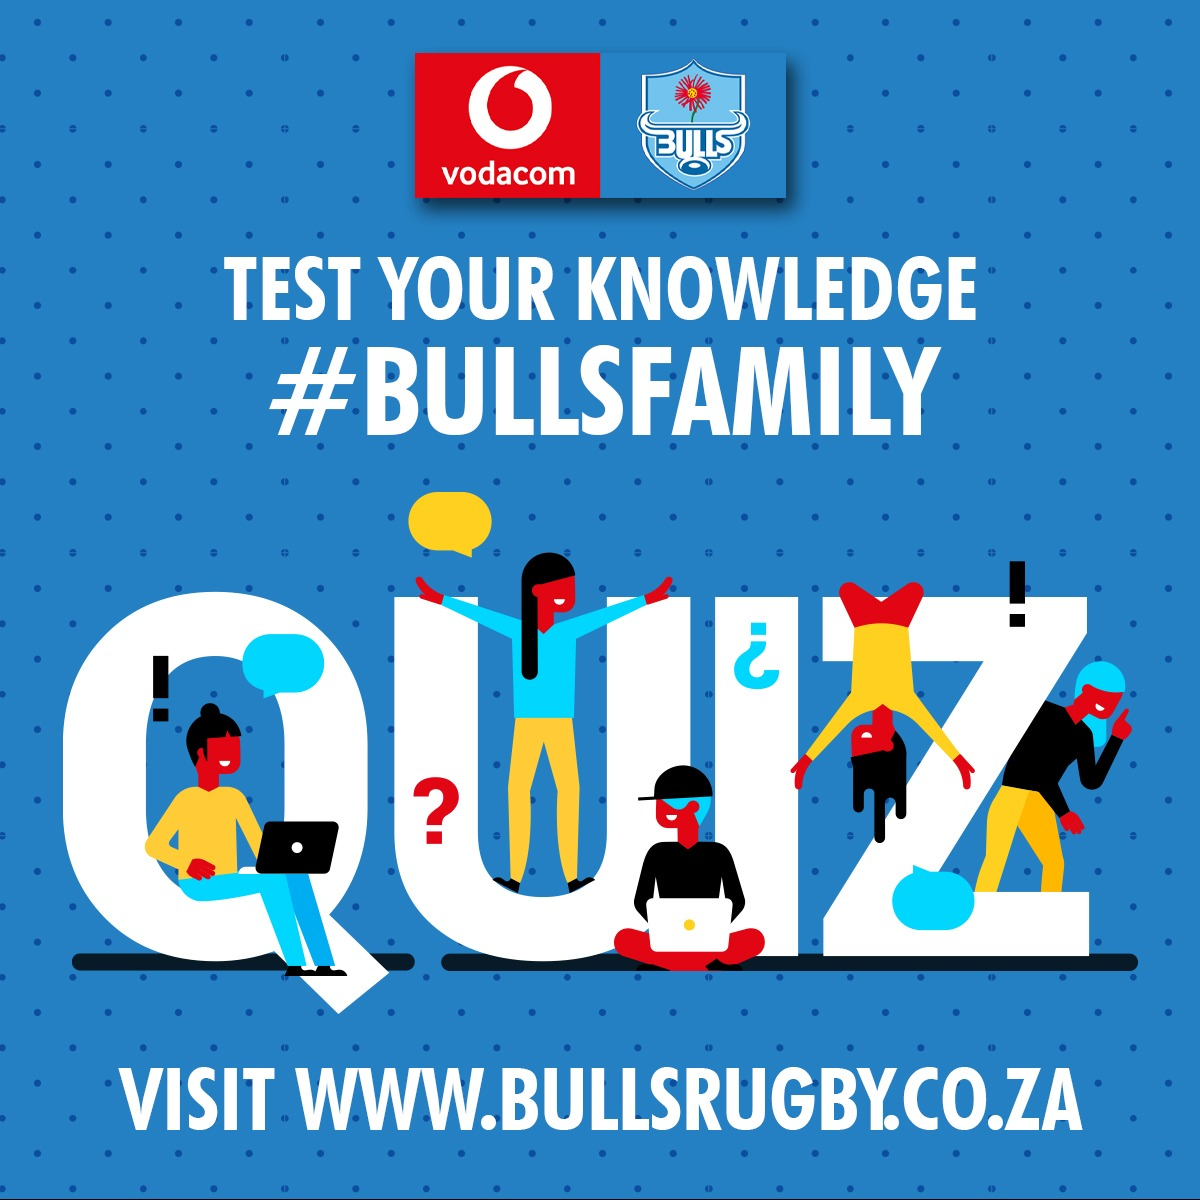 #BullsFamily We have uploaded two new quizzes for your enjoyment. Let us know how you did in the comments below. #SundayFunday Link: bullsrugby.co.za/quiz/